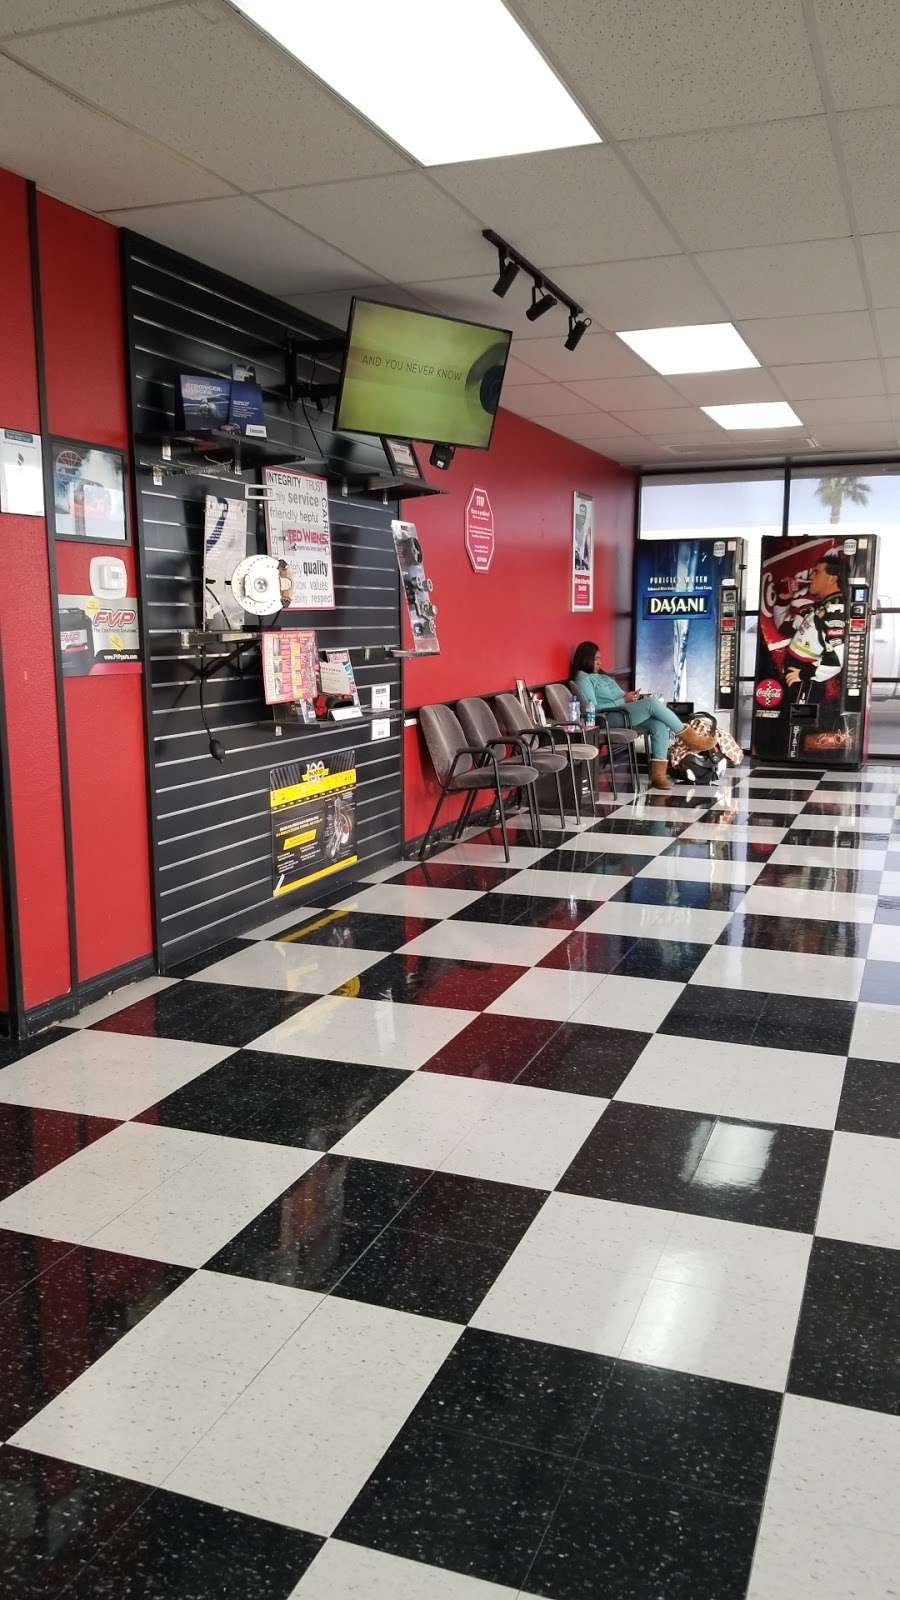 Ted Wiens Tire and Auto - car repair  | Photo 10 of 10 | Address: 7770 W Cheyenne Ave, Las Vegas, NV 89129, USA | Phone: (702) 939-8473